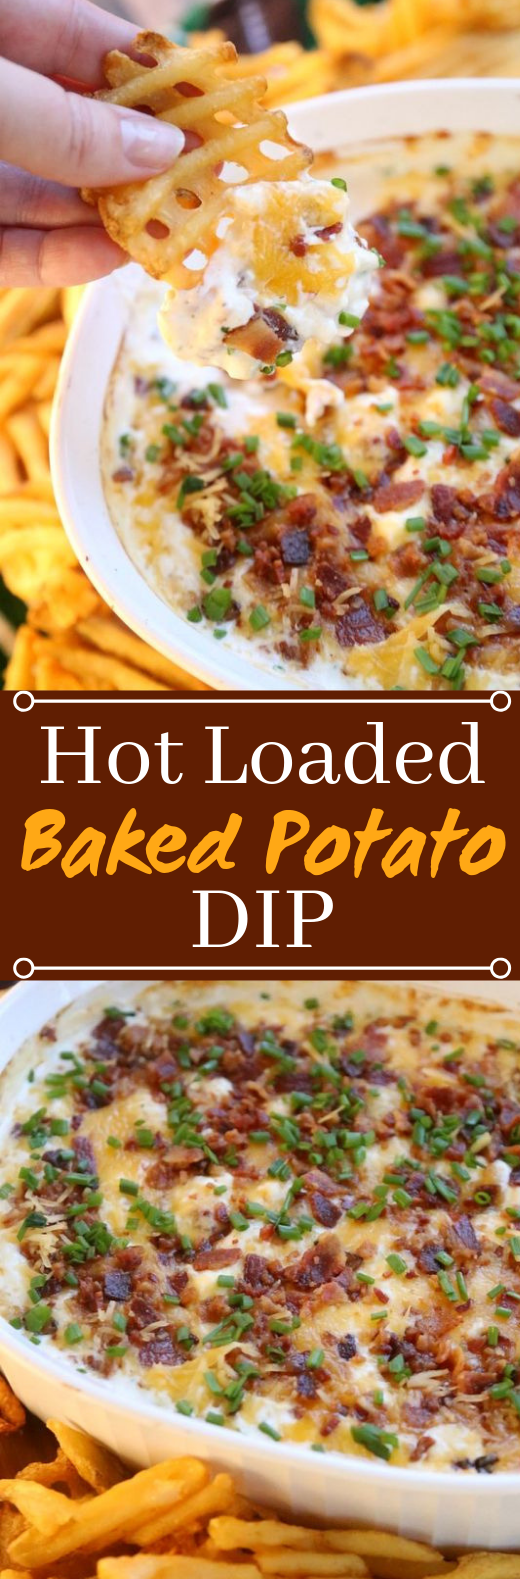 Hot Loaded Baked Potato Dip #appetizers #snacks